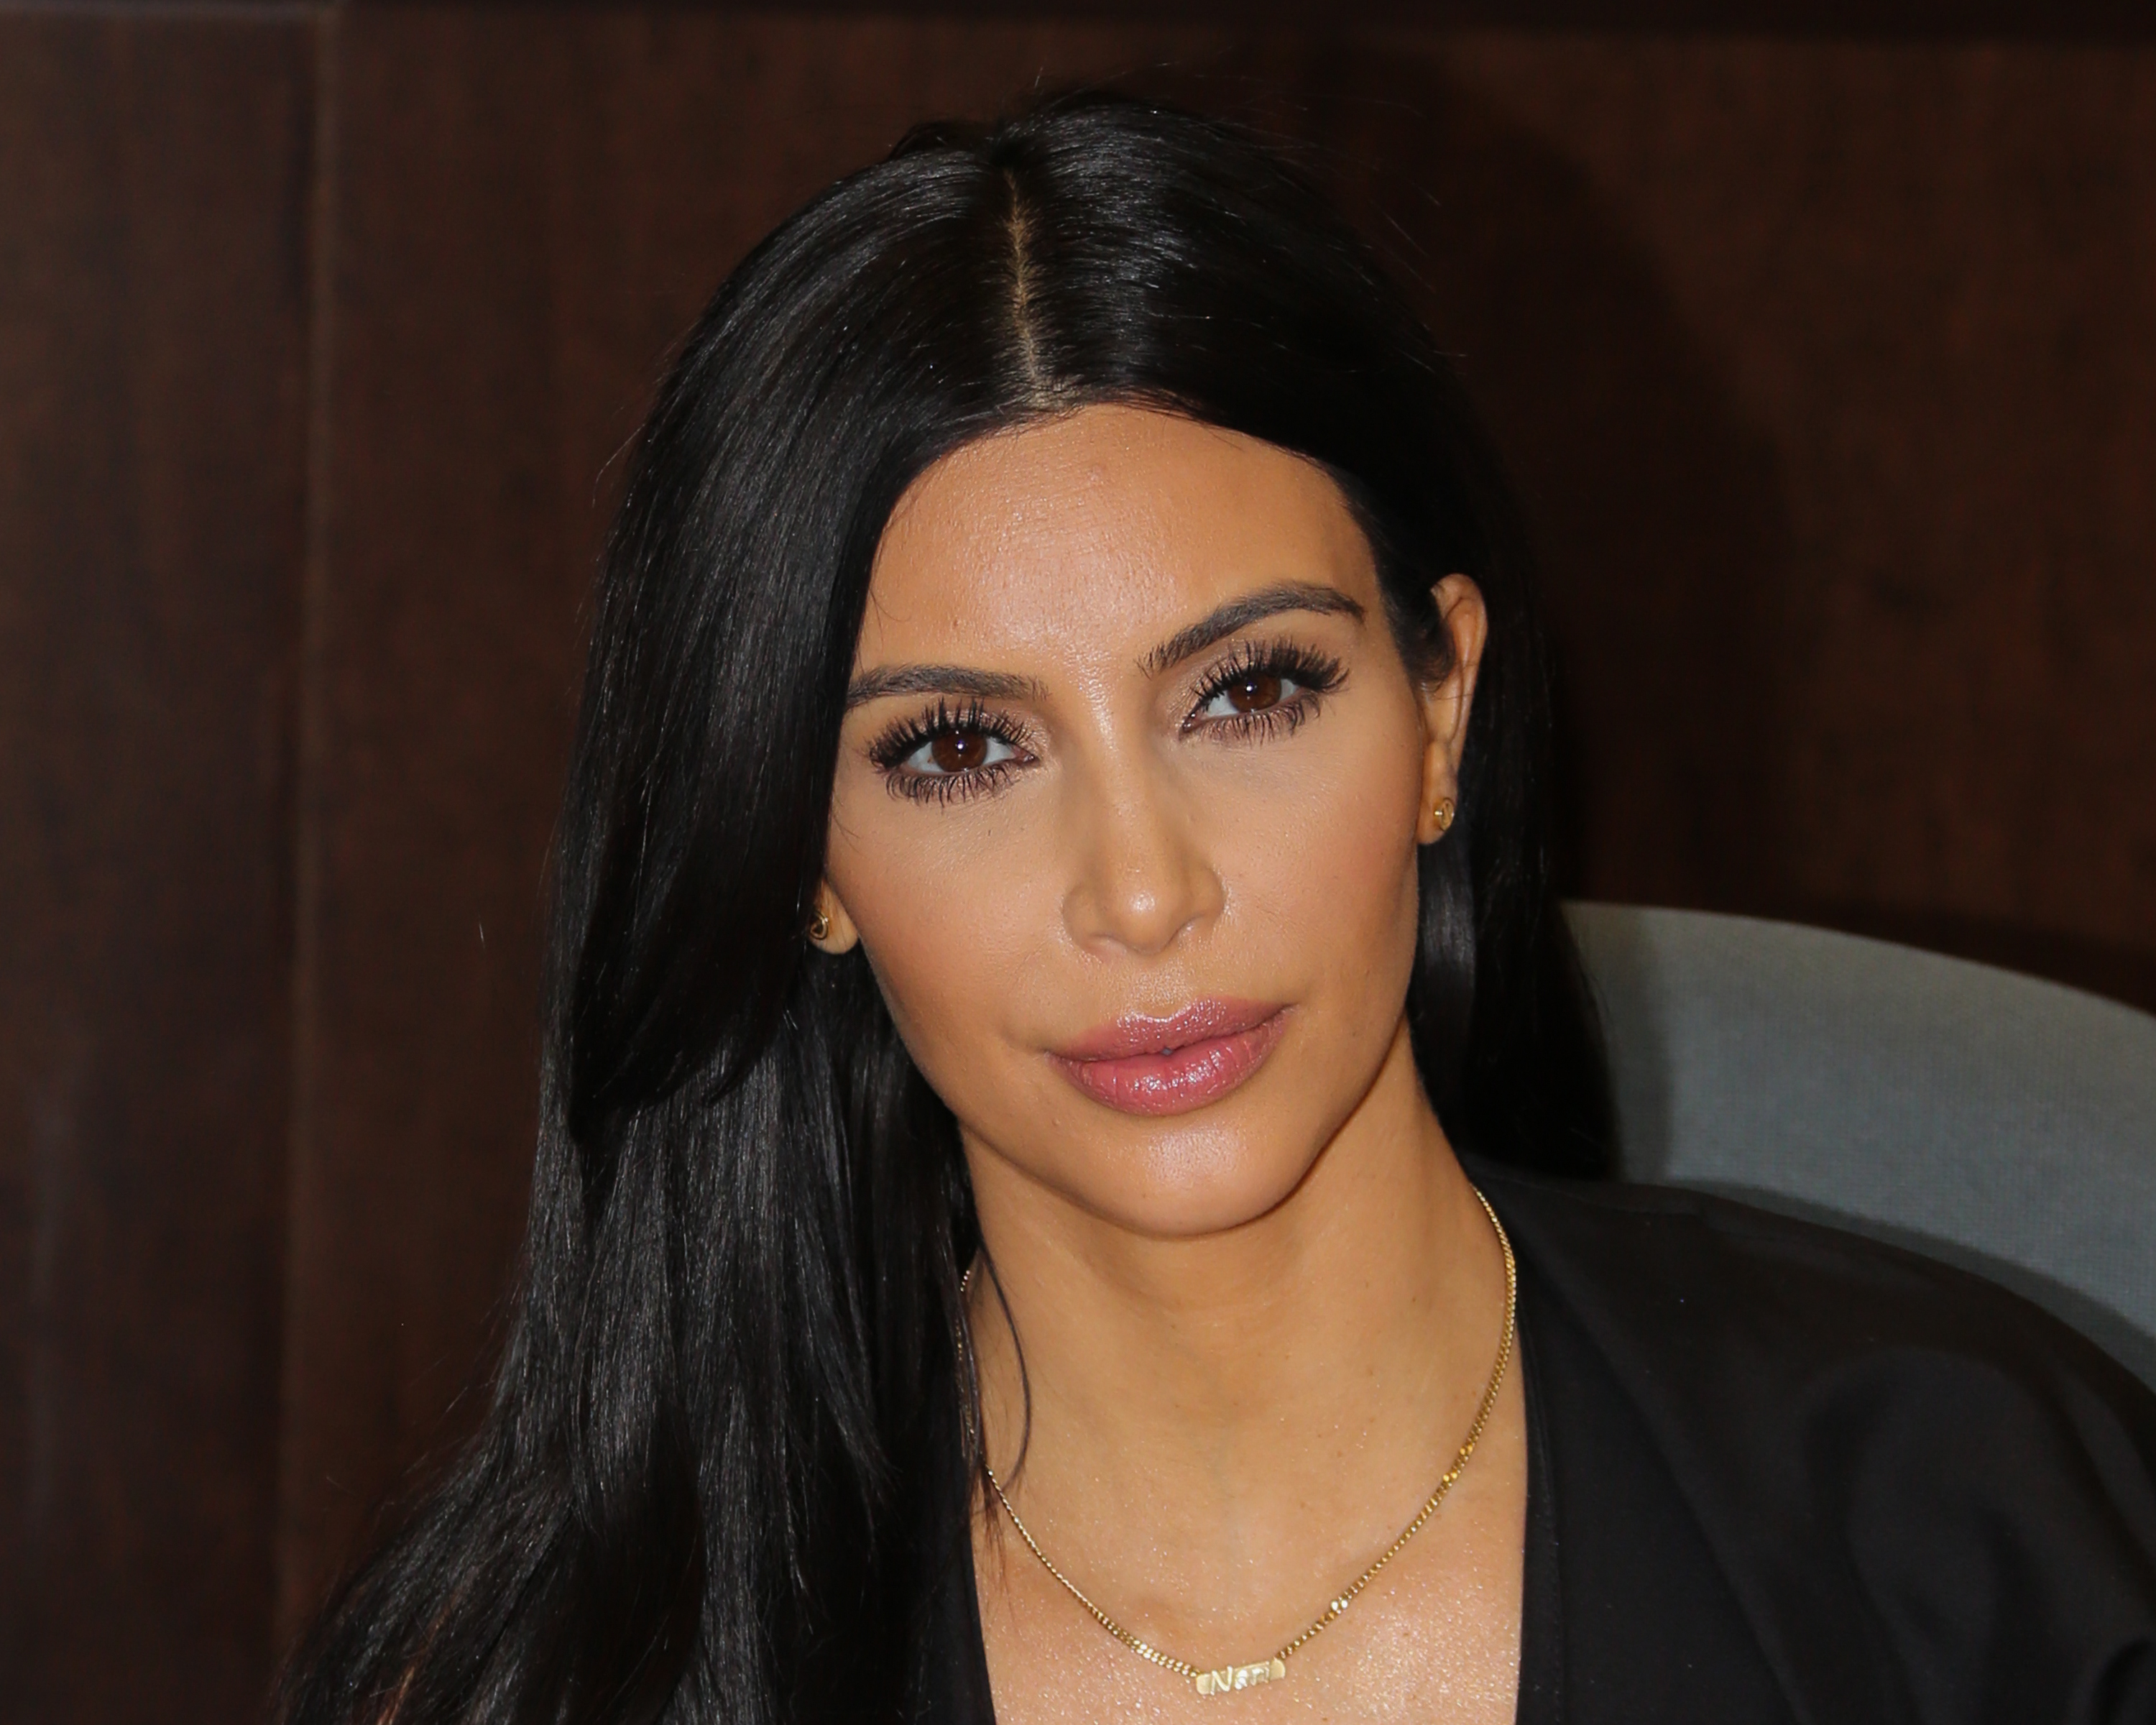 Reality TV Personality Kim Kardashian signs copies of her new book   Selfish  at Barnes & Noble bookstore at The Grove on May 7, 2015 in Los Angeles.